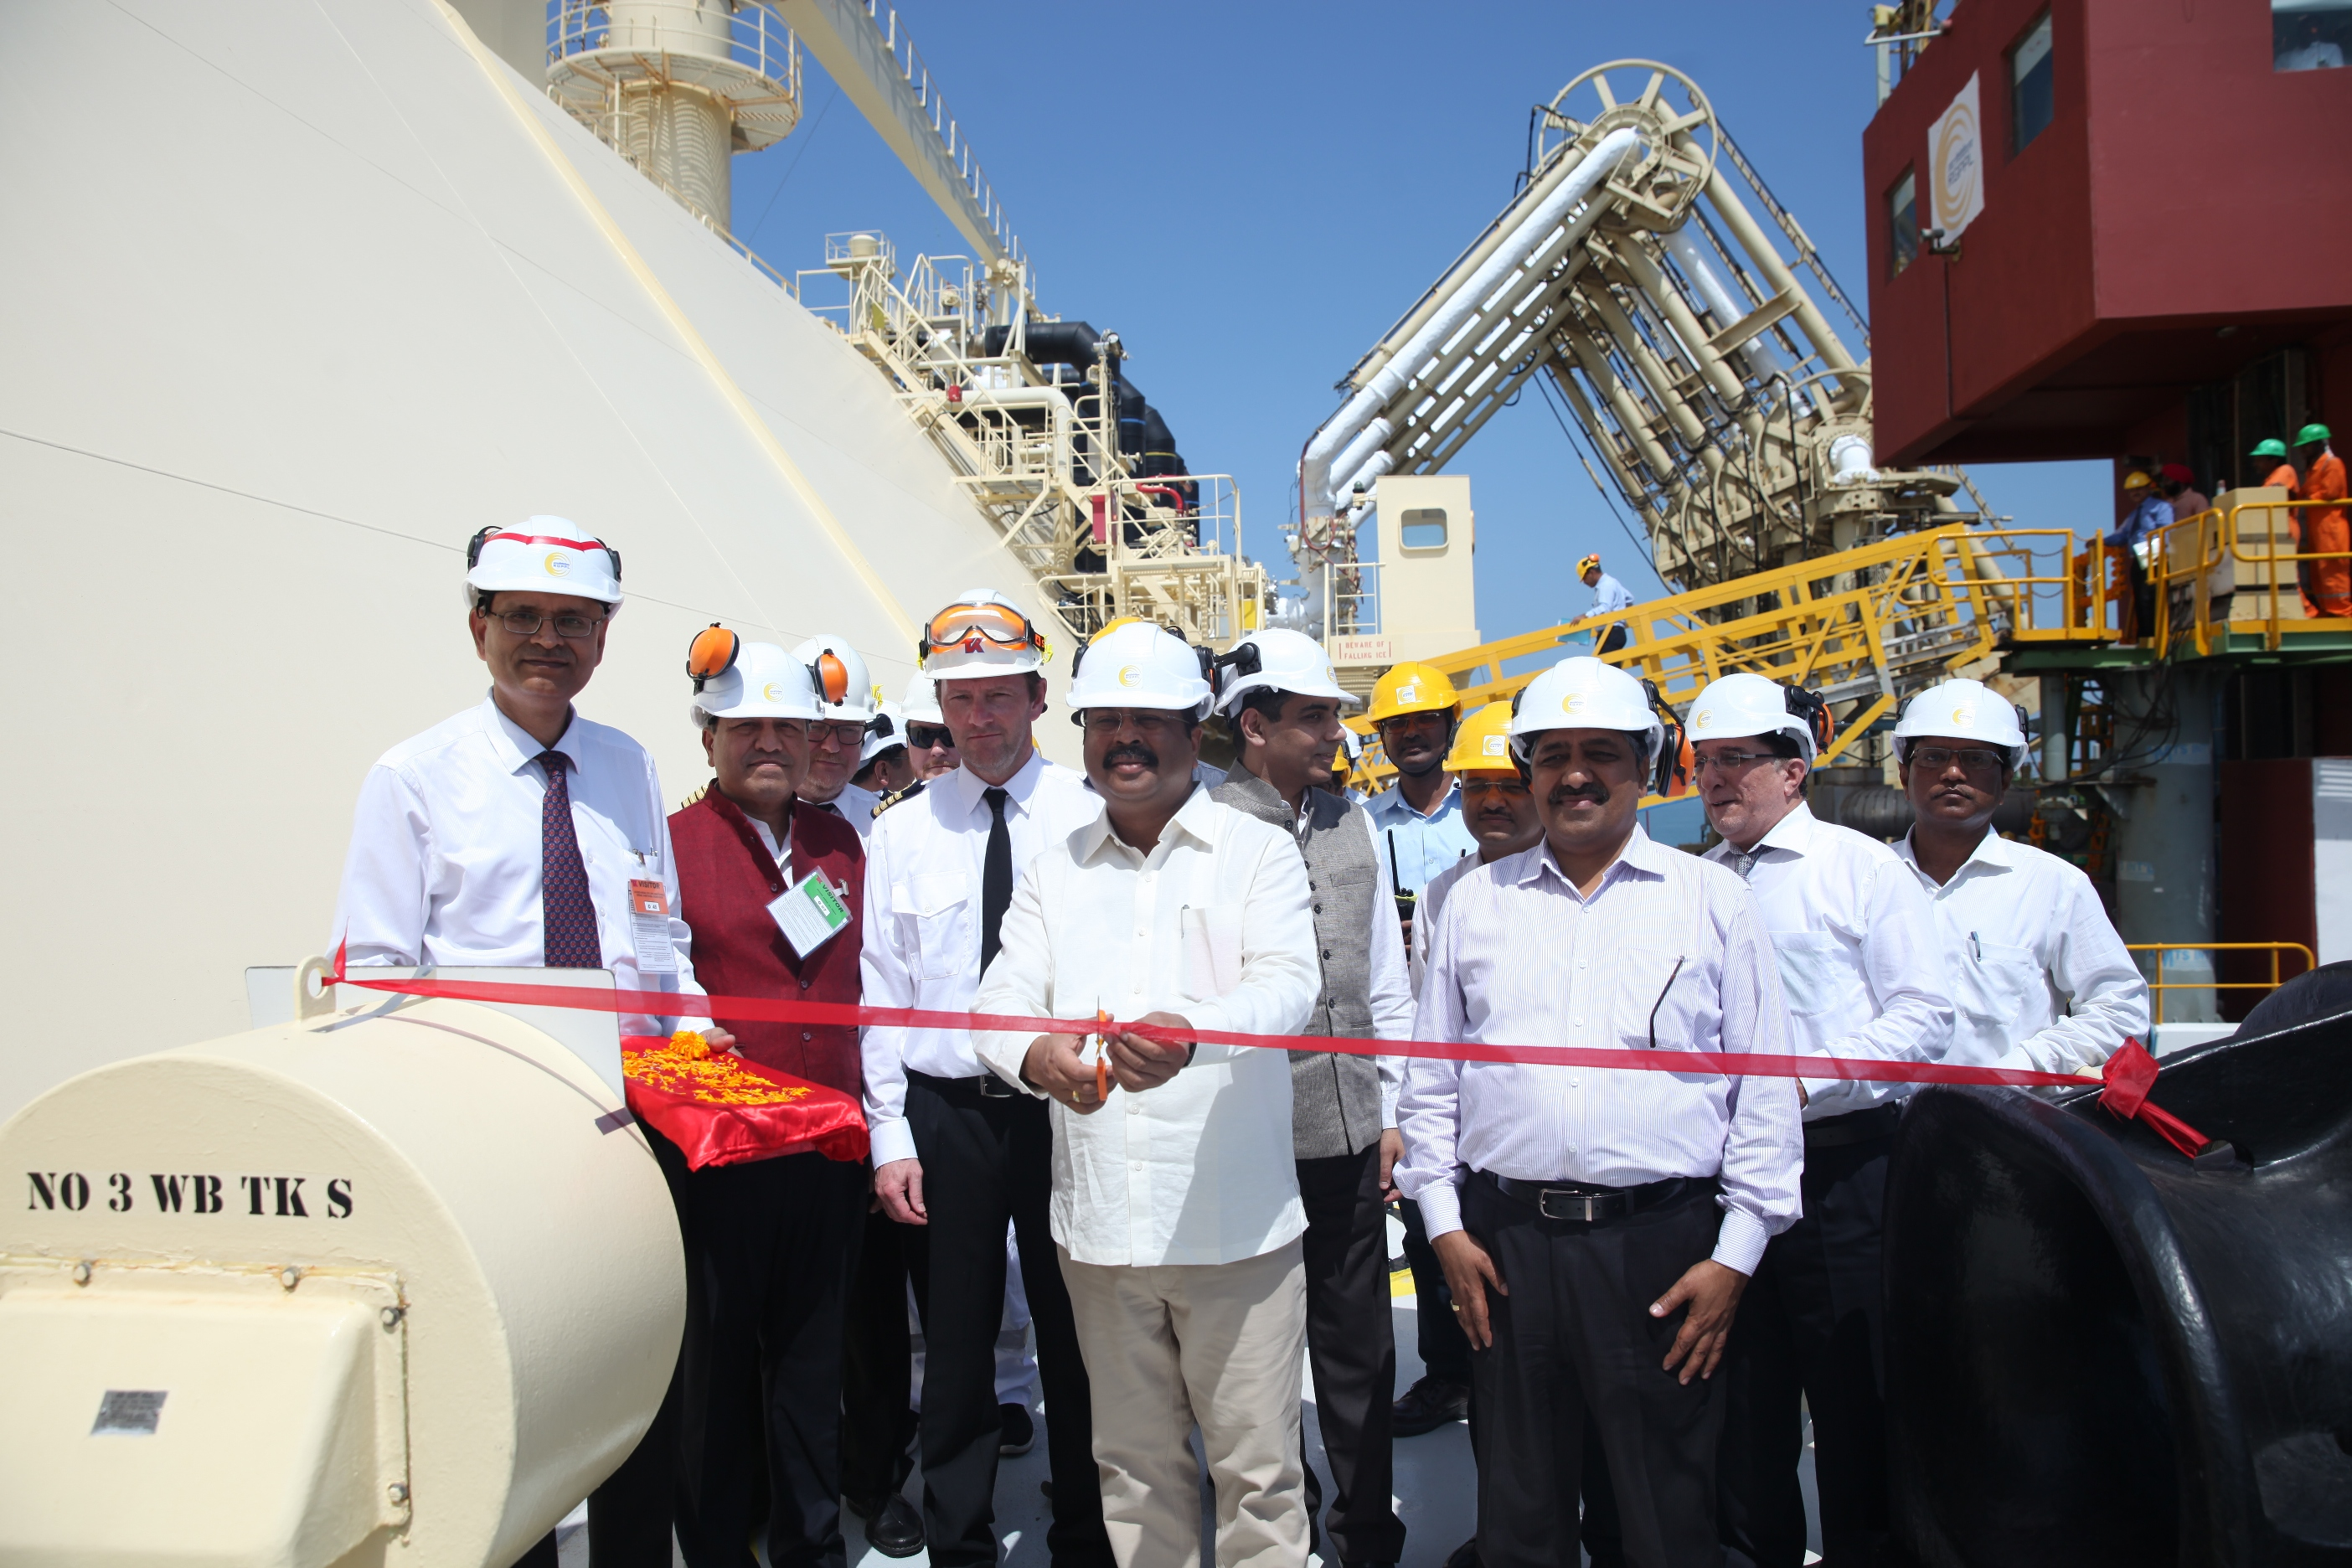 Hon'ble Minister, P&NG, receives India's first US LNG cargo